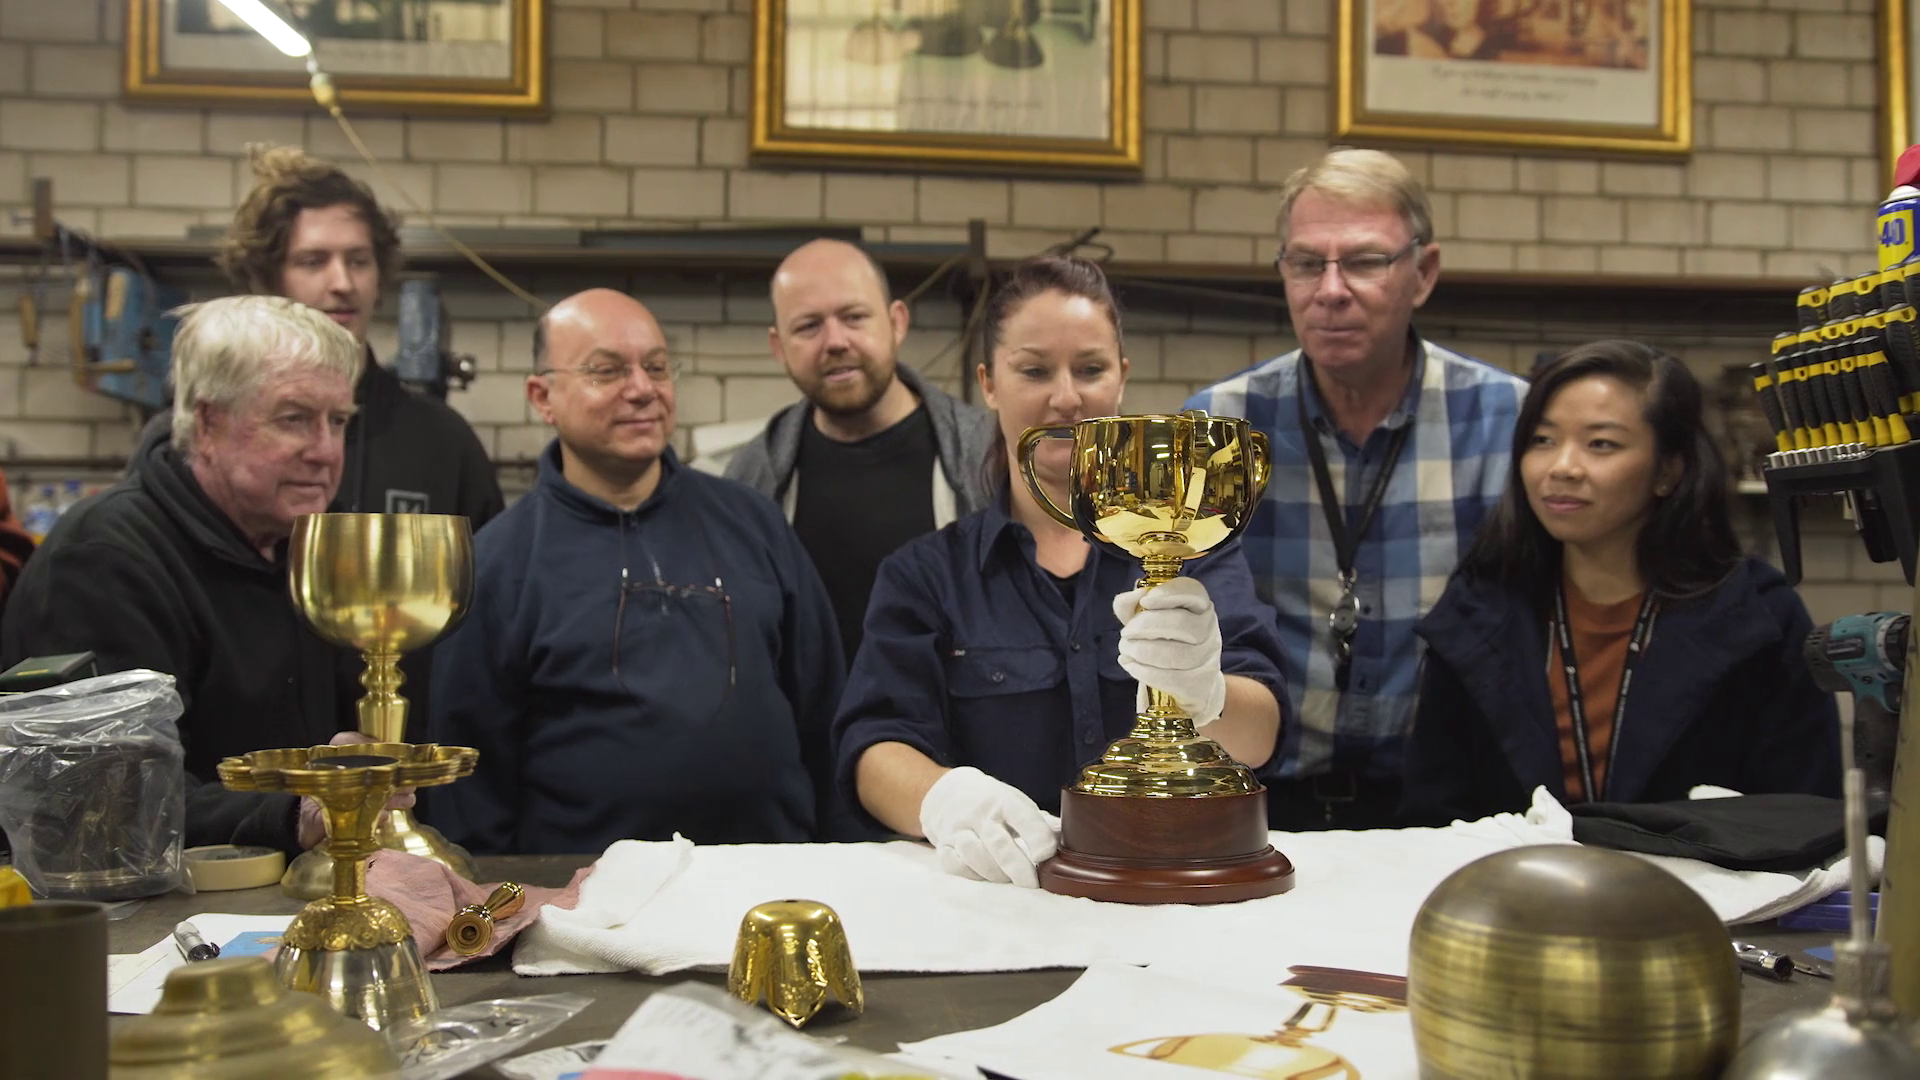 The ABC Refinery team carefully piecing the 2018 Lexus Melbourne Cup together.